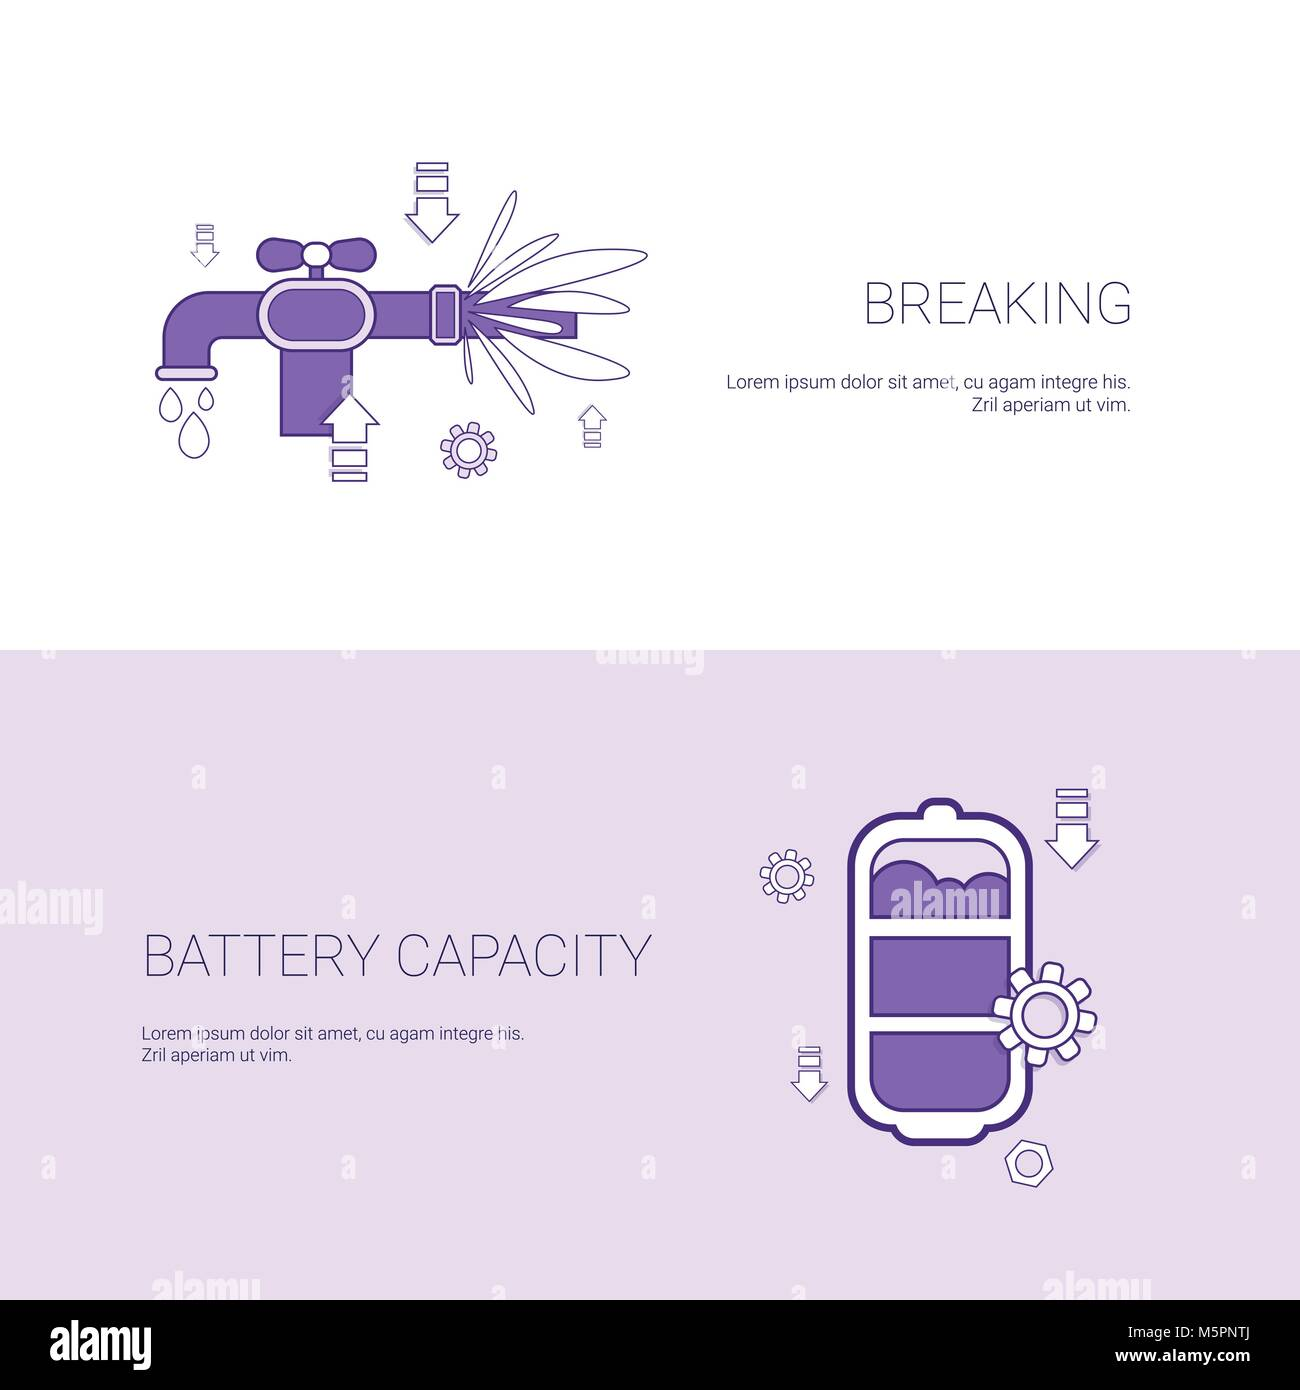 Pipe Breaking And Battery Capacity Concept Template Web Banner With Copy Space - Stock Vector